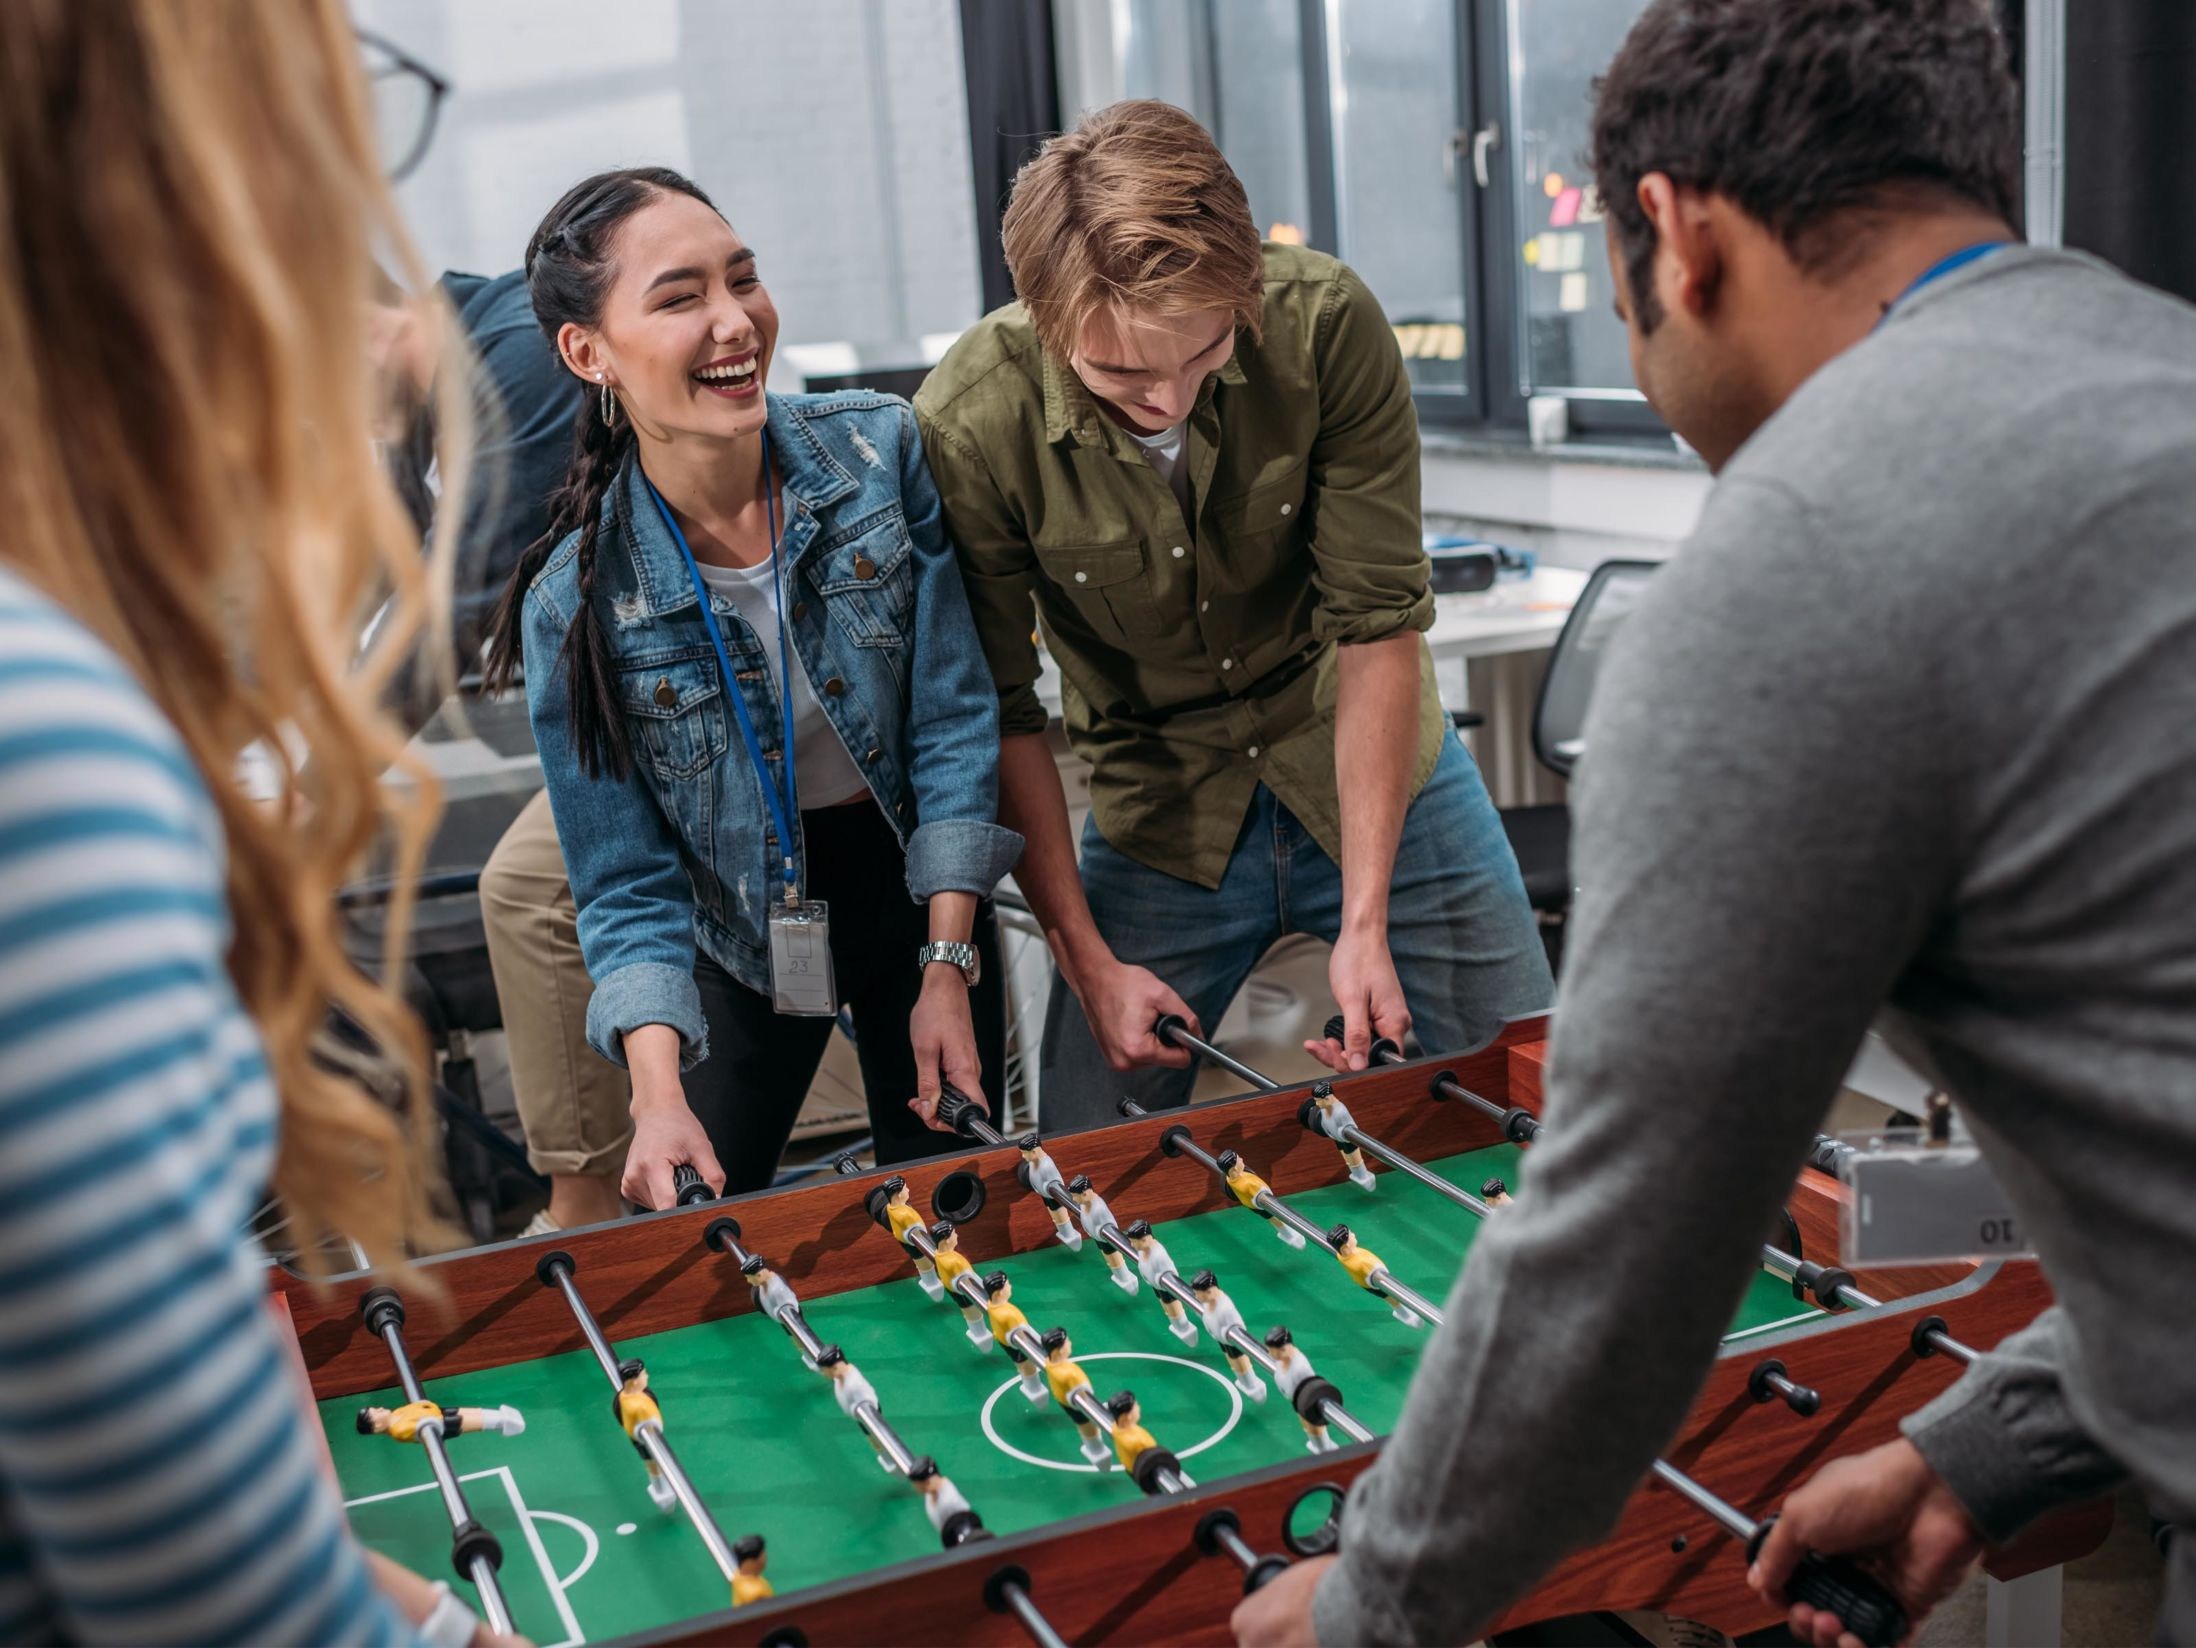 Christmas Party Ideas Perfect for In-Office - Games Galore